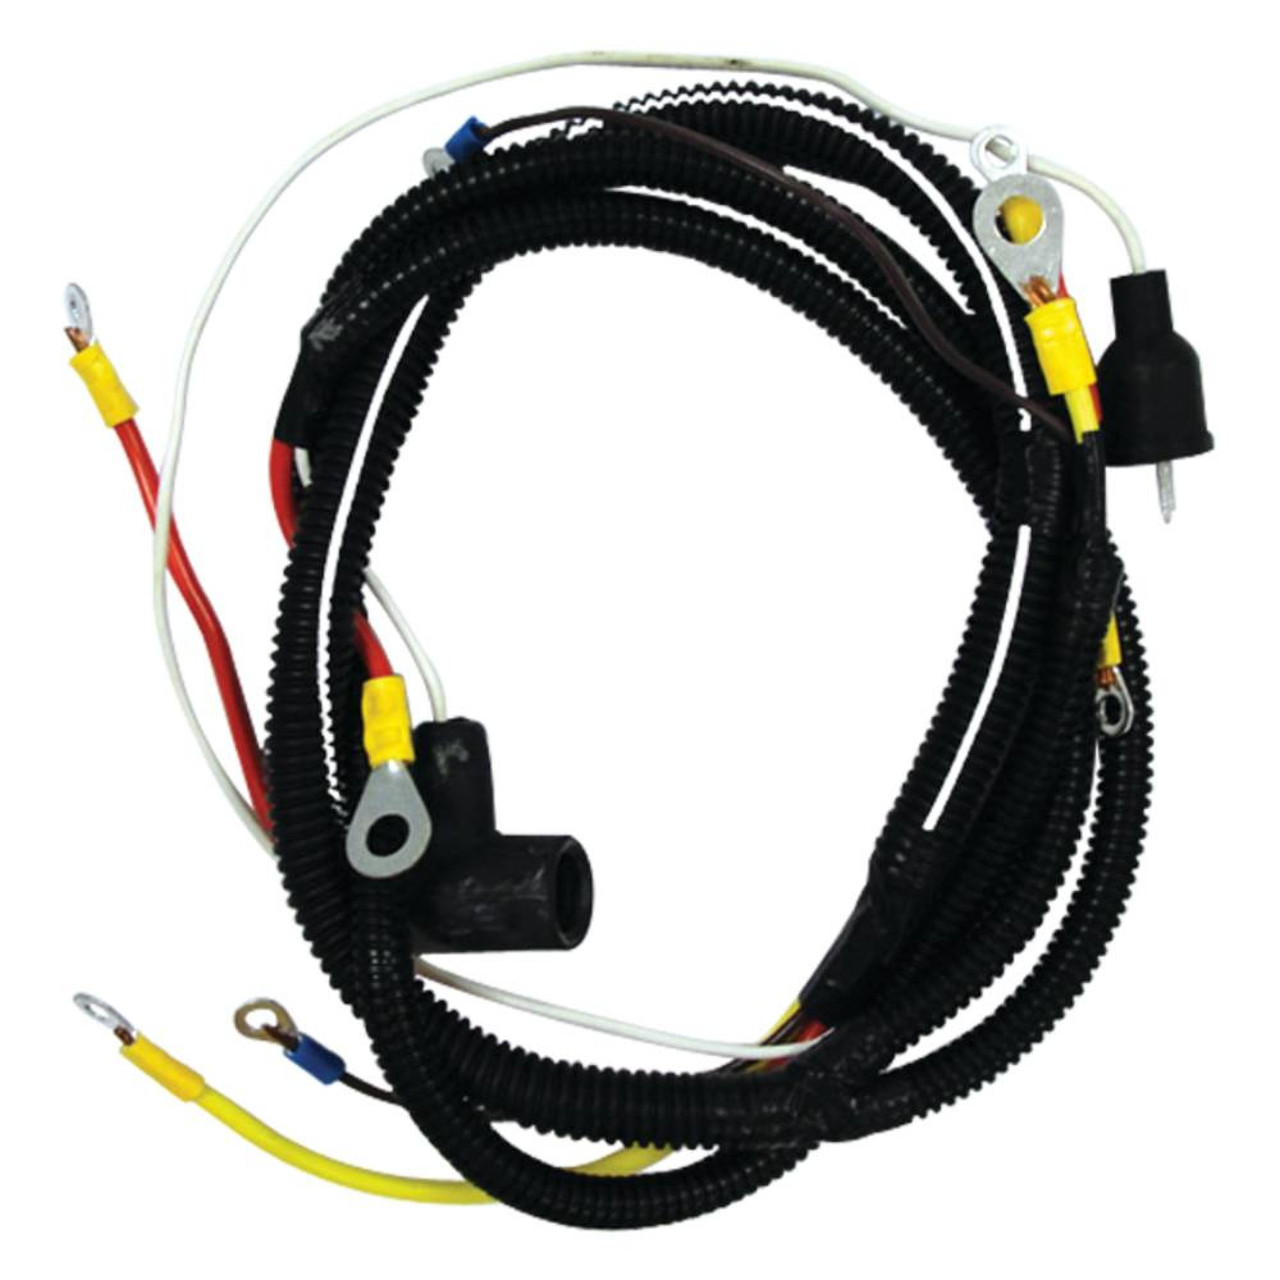 medium resolution of new wiring harness for ford new holland 2n 8n 9n complete tractord3d71ba2asa5oz cloudfront net